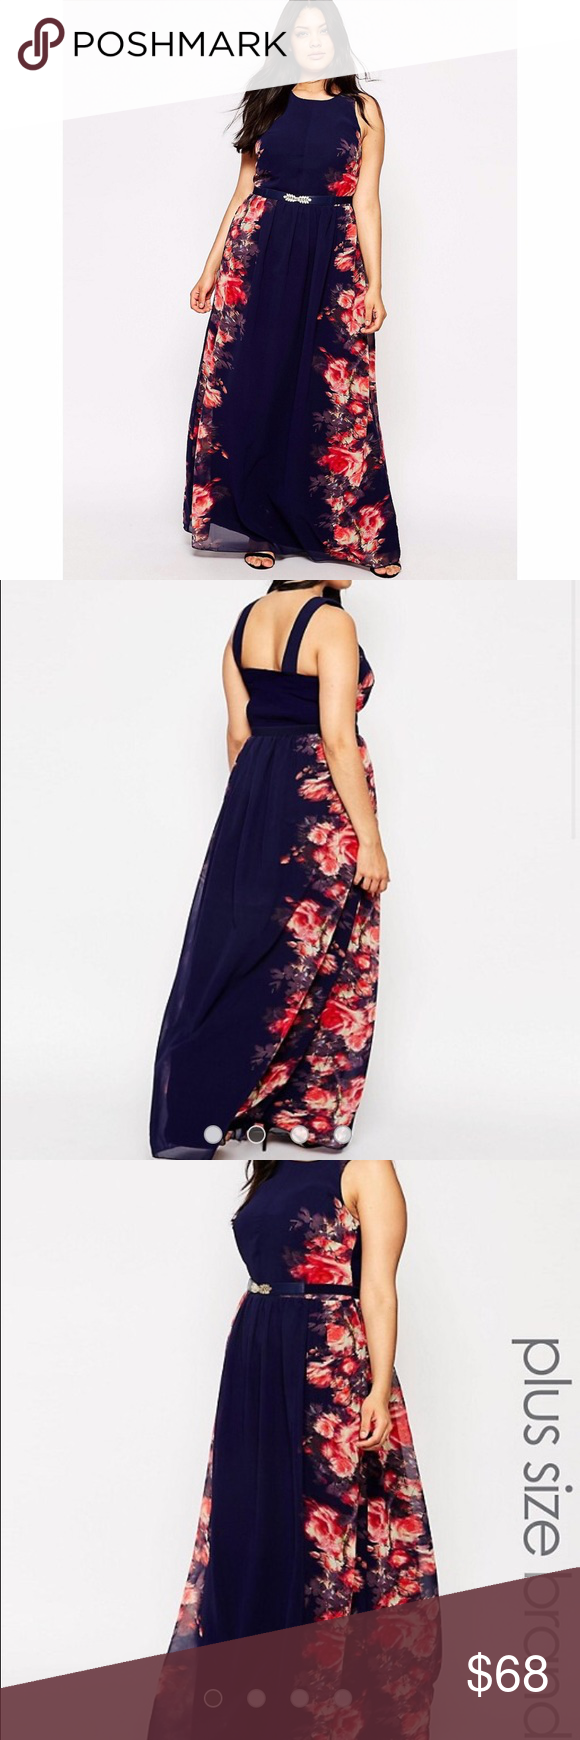 Asos floral maxi gold belts floral maxi and dark blue